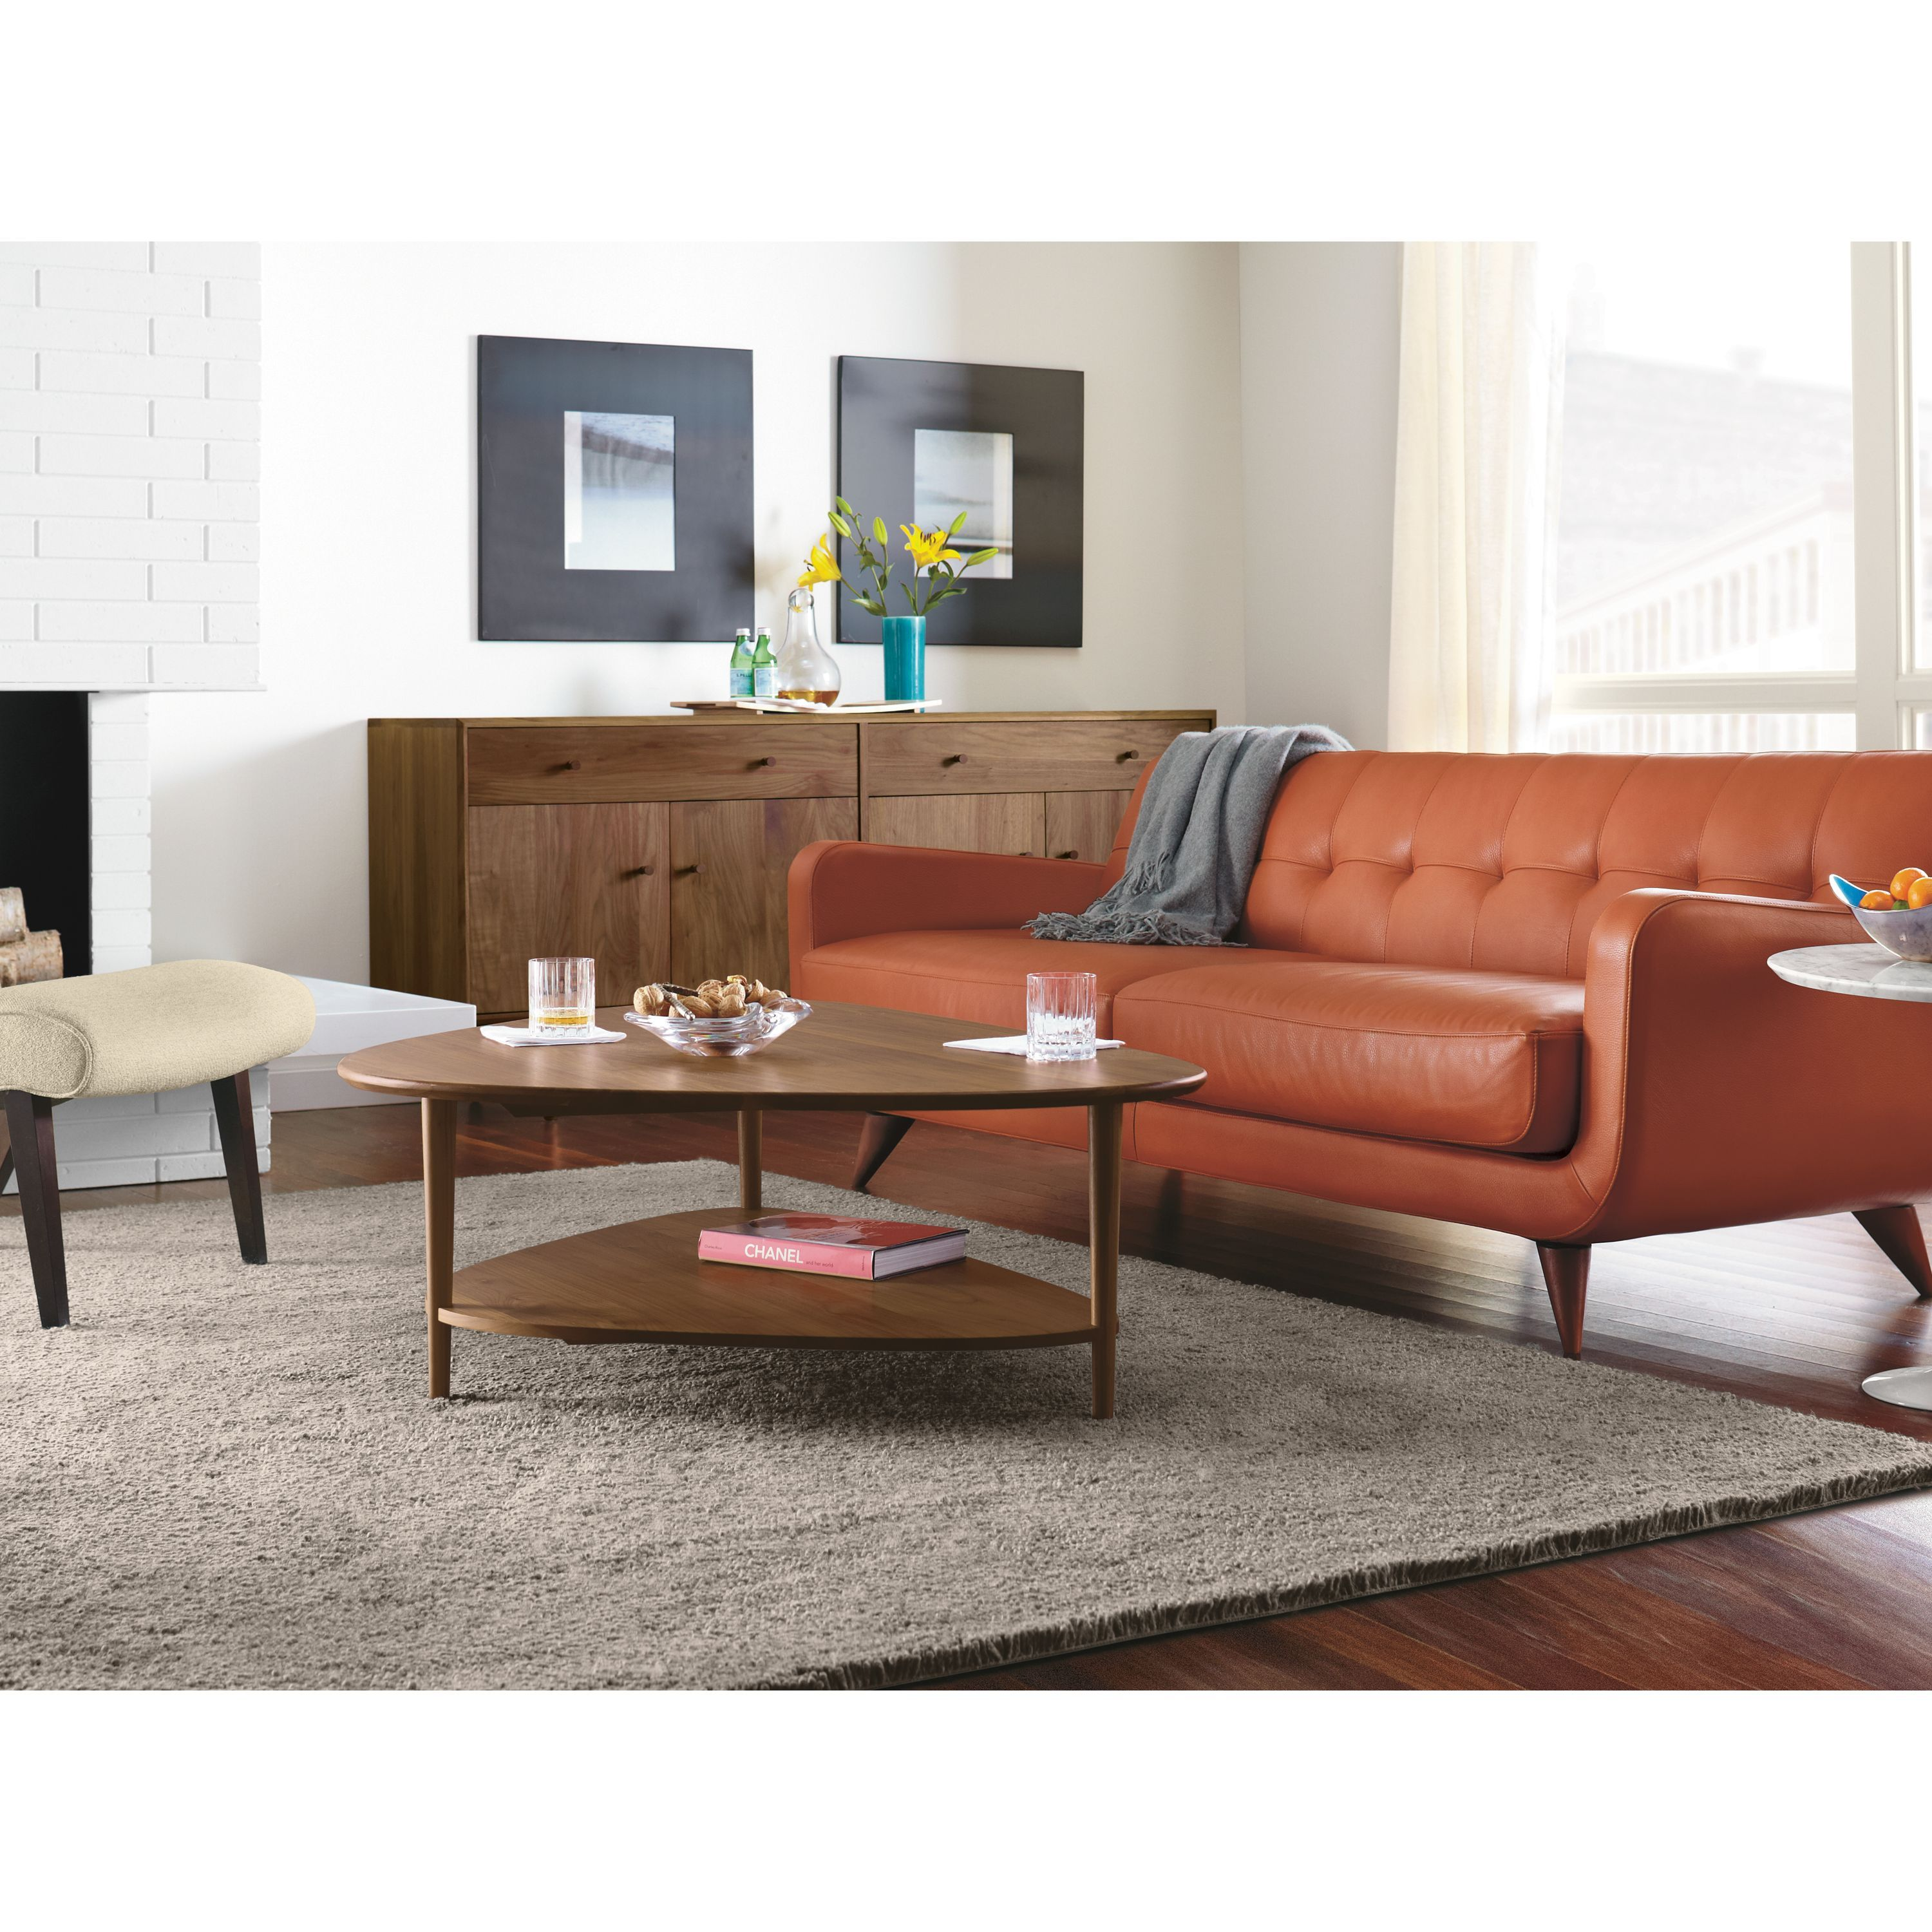 Adler Oval Coffee Table Ethan Allen Us Pine Coffee Table Coffee Tables For Sale Small Coffee Table